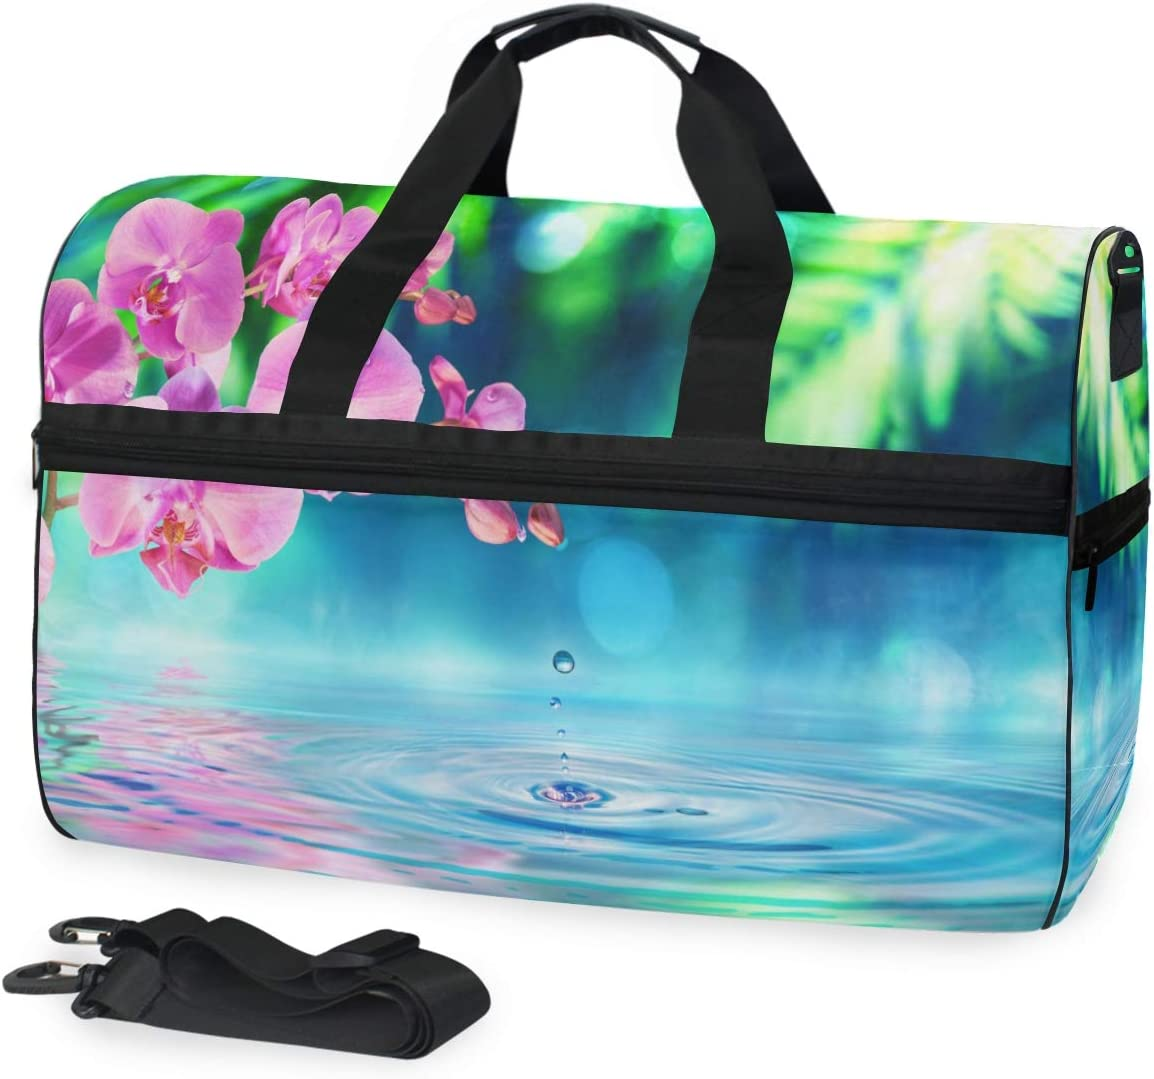 ALAZA Orchid Flowers with Zen Stone Sports Gym Duffel Bag Travel Luggage Handbag Shoulder Bag with Shoes Compartment for Men Women